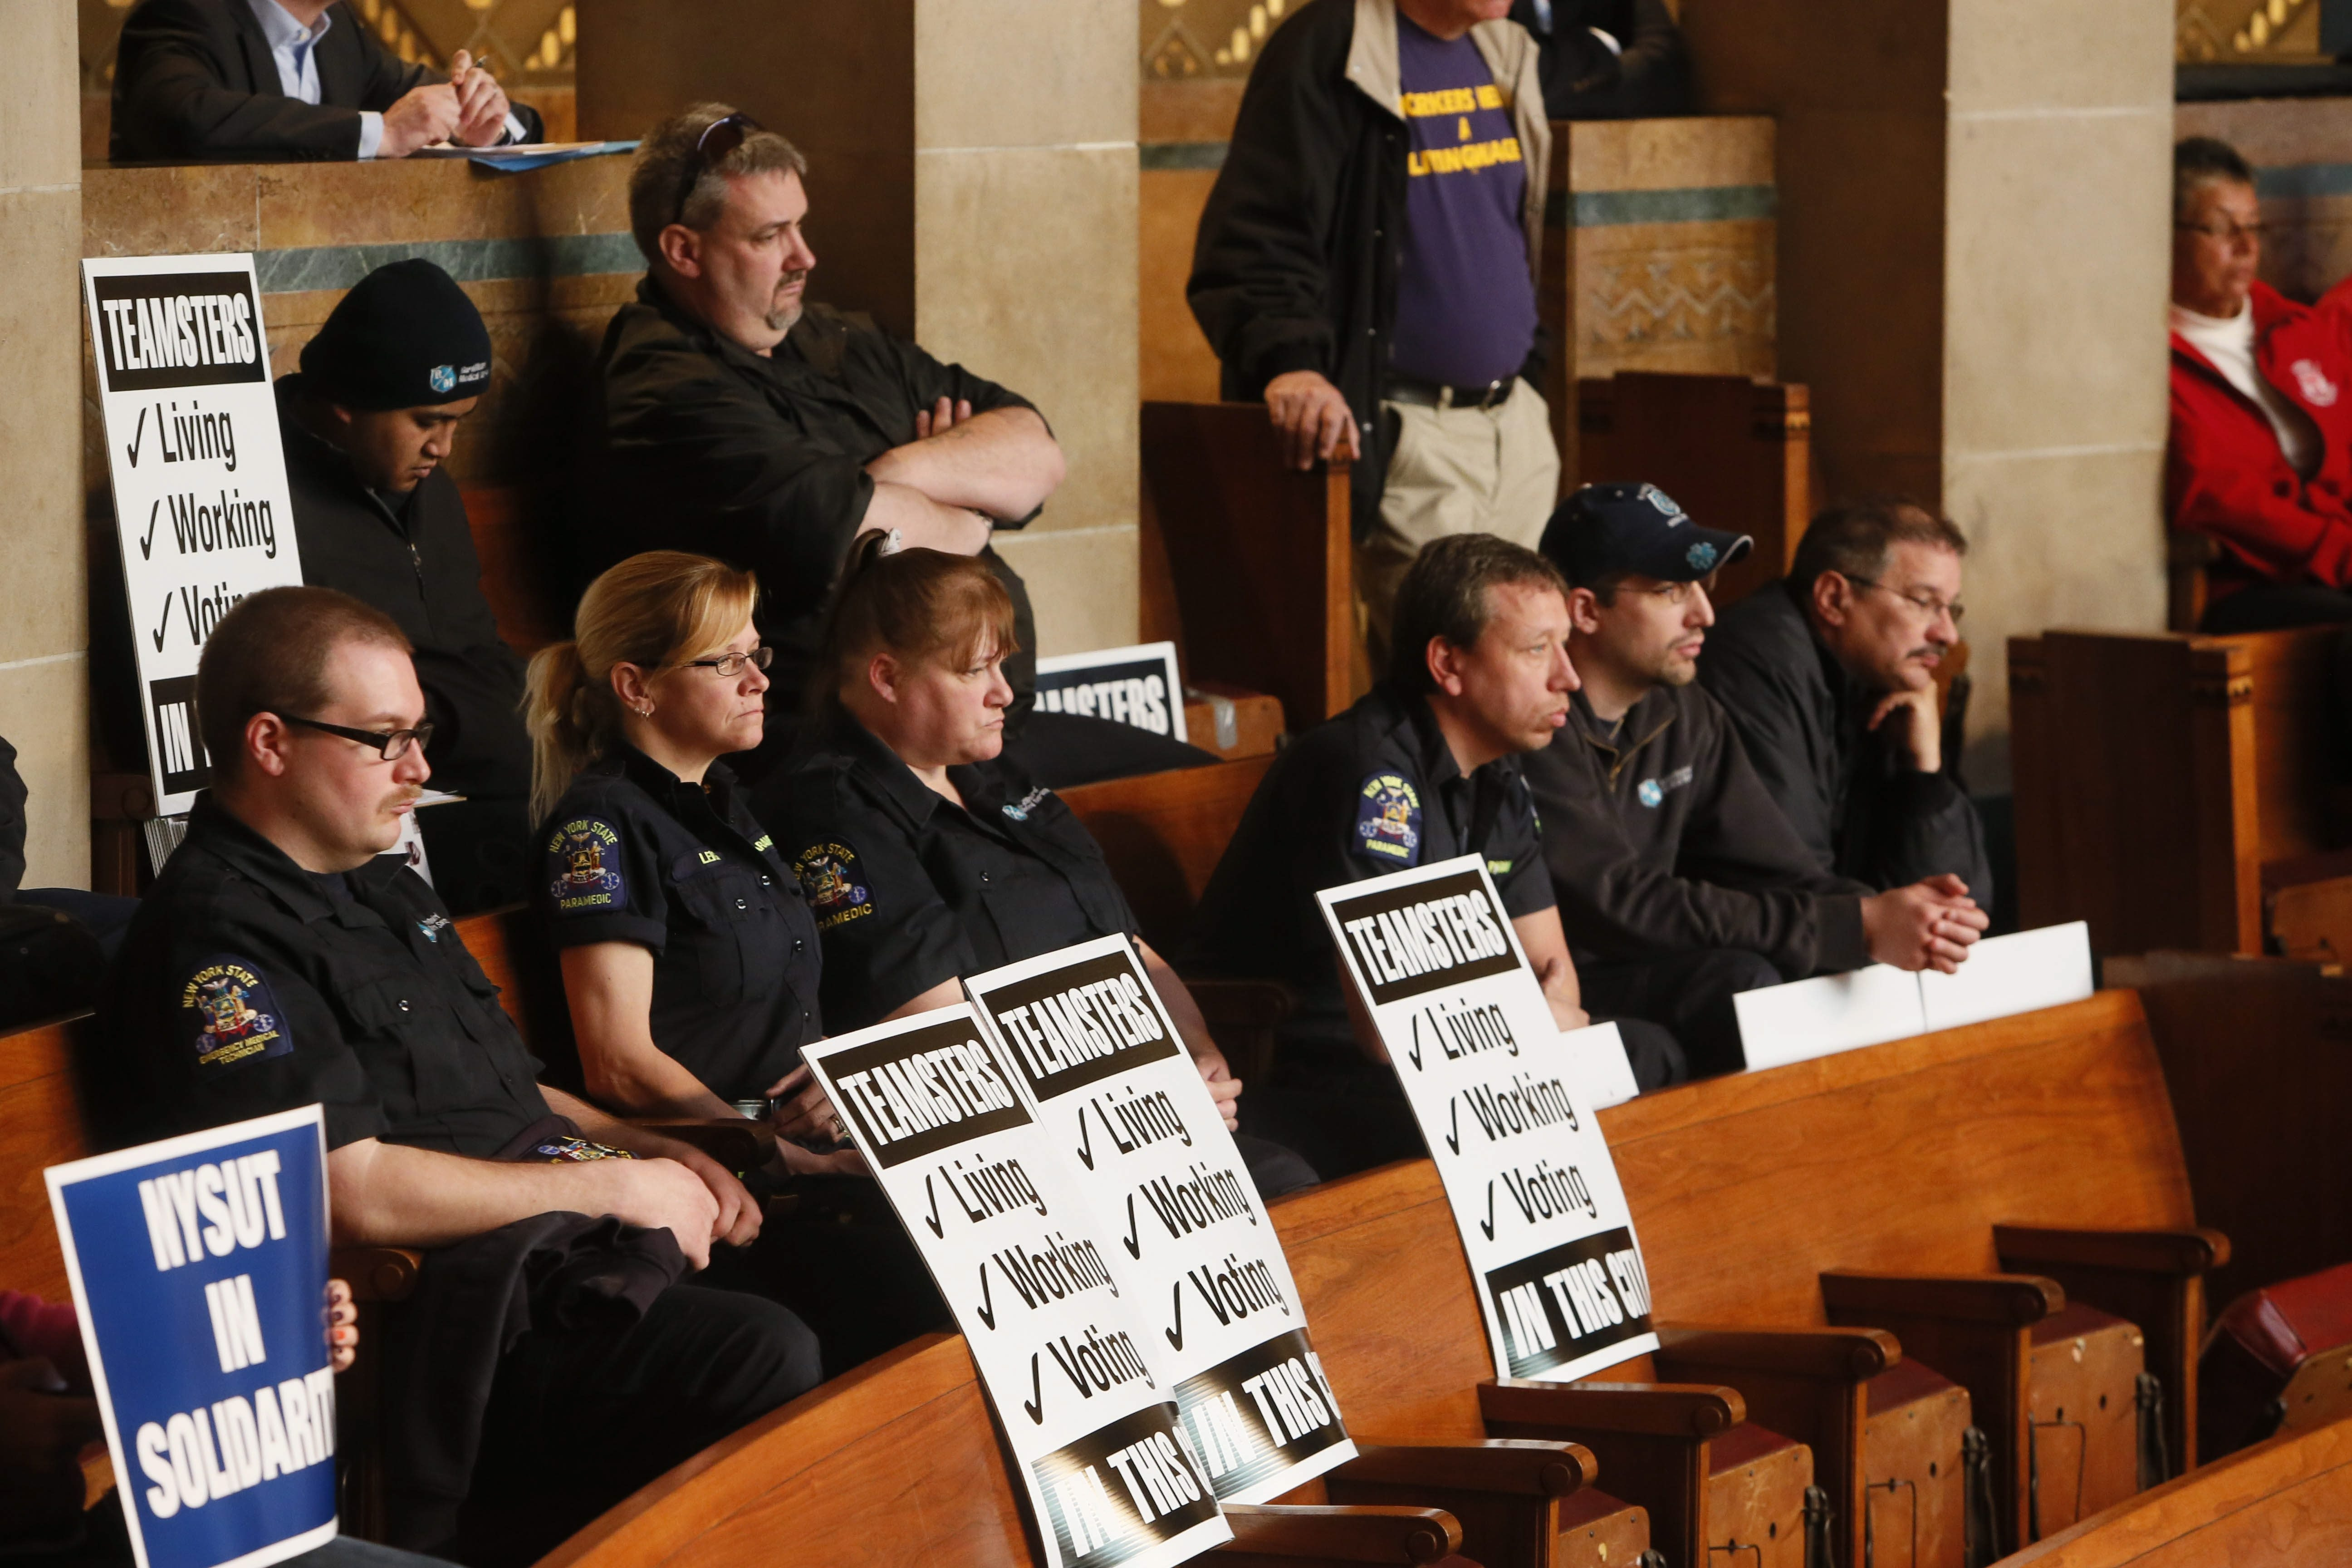 About 35 Rural/Metro employees and Teamster union members were in City Hall Tuesday, urging the city to retain Rural/Metro as the city's ambulance provider.